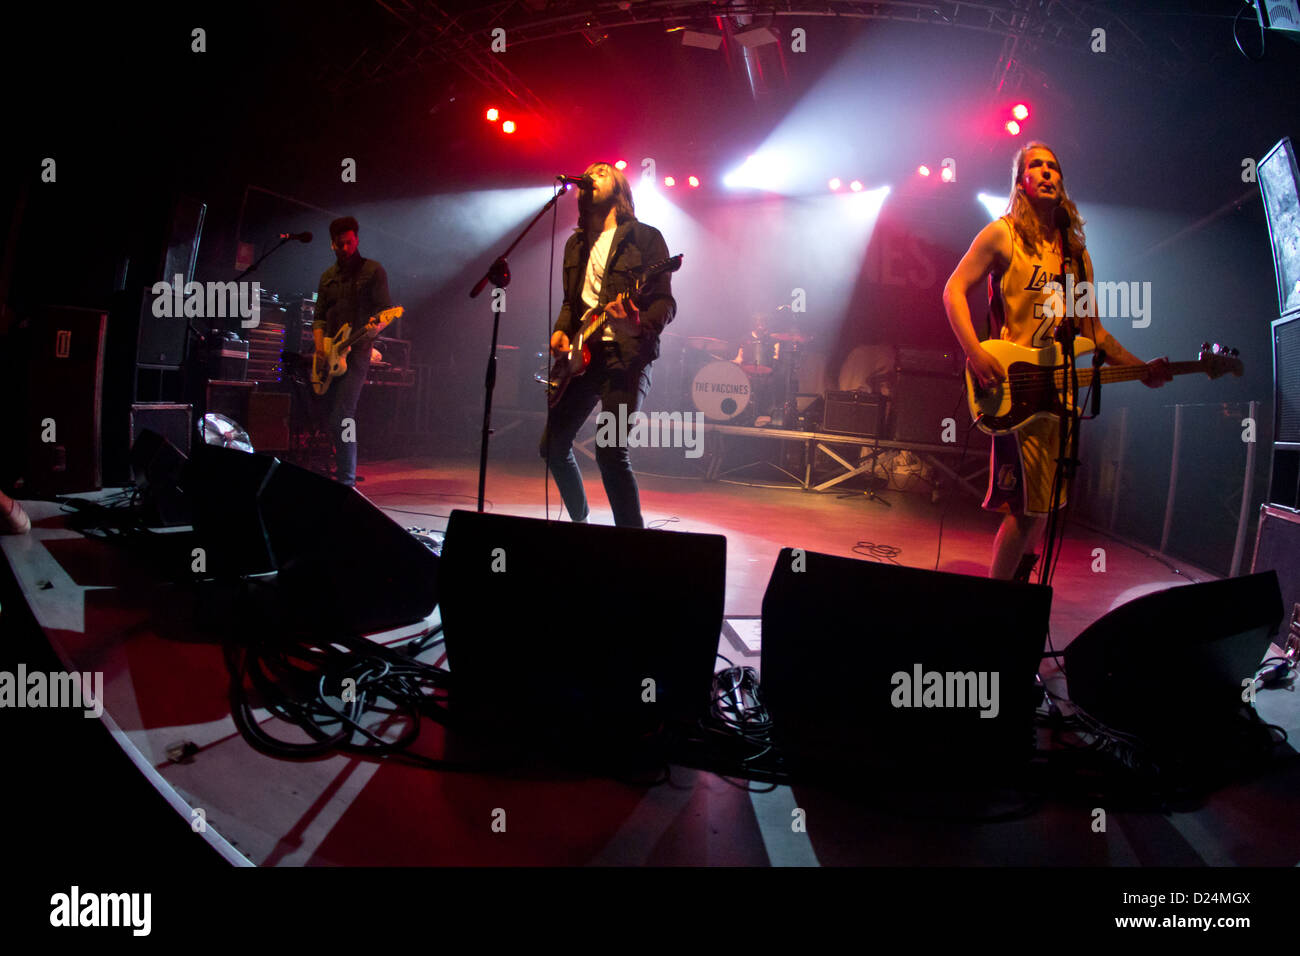 December 13, 2012 - Milan, Italy - The Vaccines, english rock band performs at the music club Magazzini Generali - Stock Image